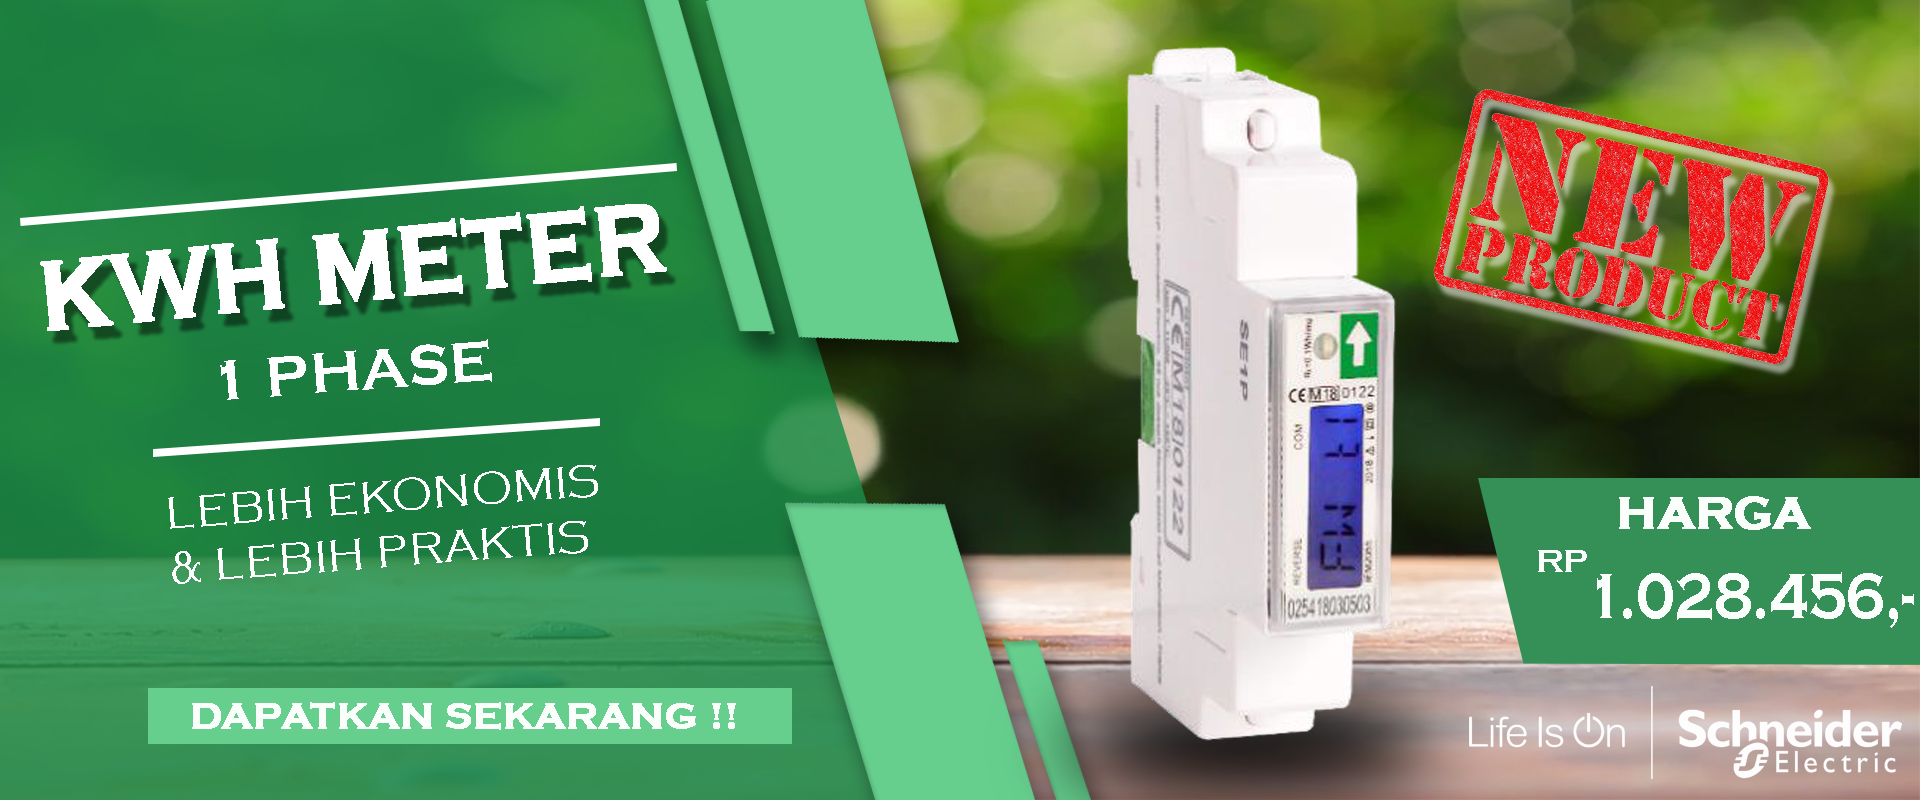 NEW PRODUCT KWH METER